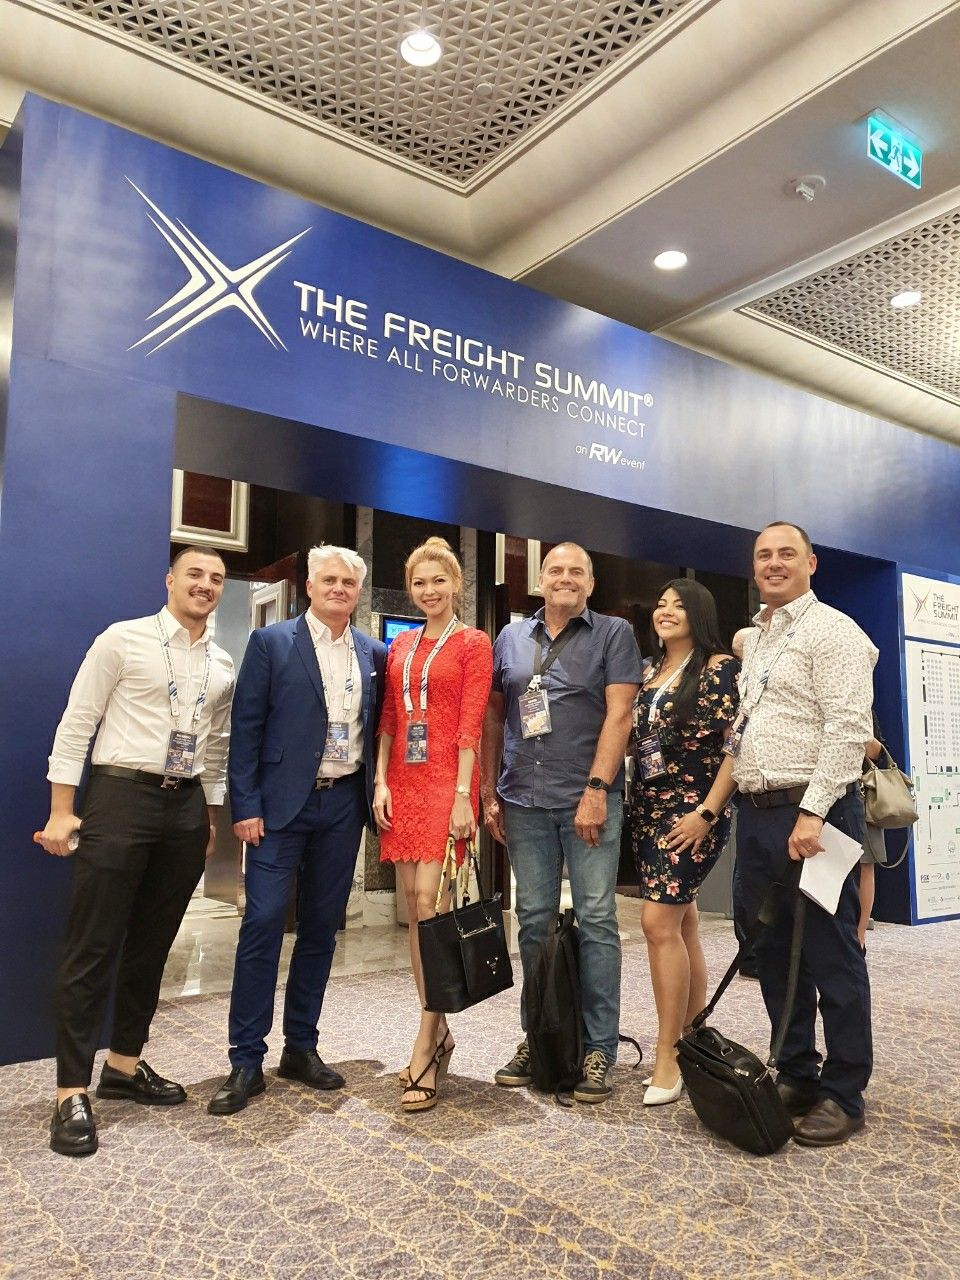 Another day of the woman in red ❤ I can say that all the meetings today went so well. 🥳 Let's get the business rolling! 🤝  #LanWork #FreightForwarder #TSLNaxco #TFS #TheFreightSummit #MacauTrip #LanInMacau #Macau